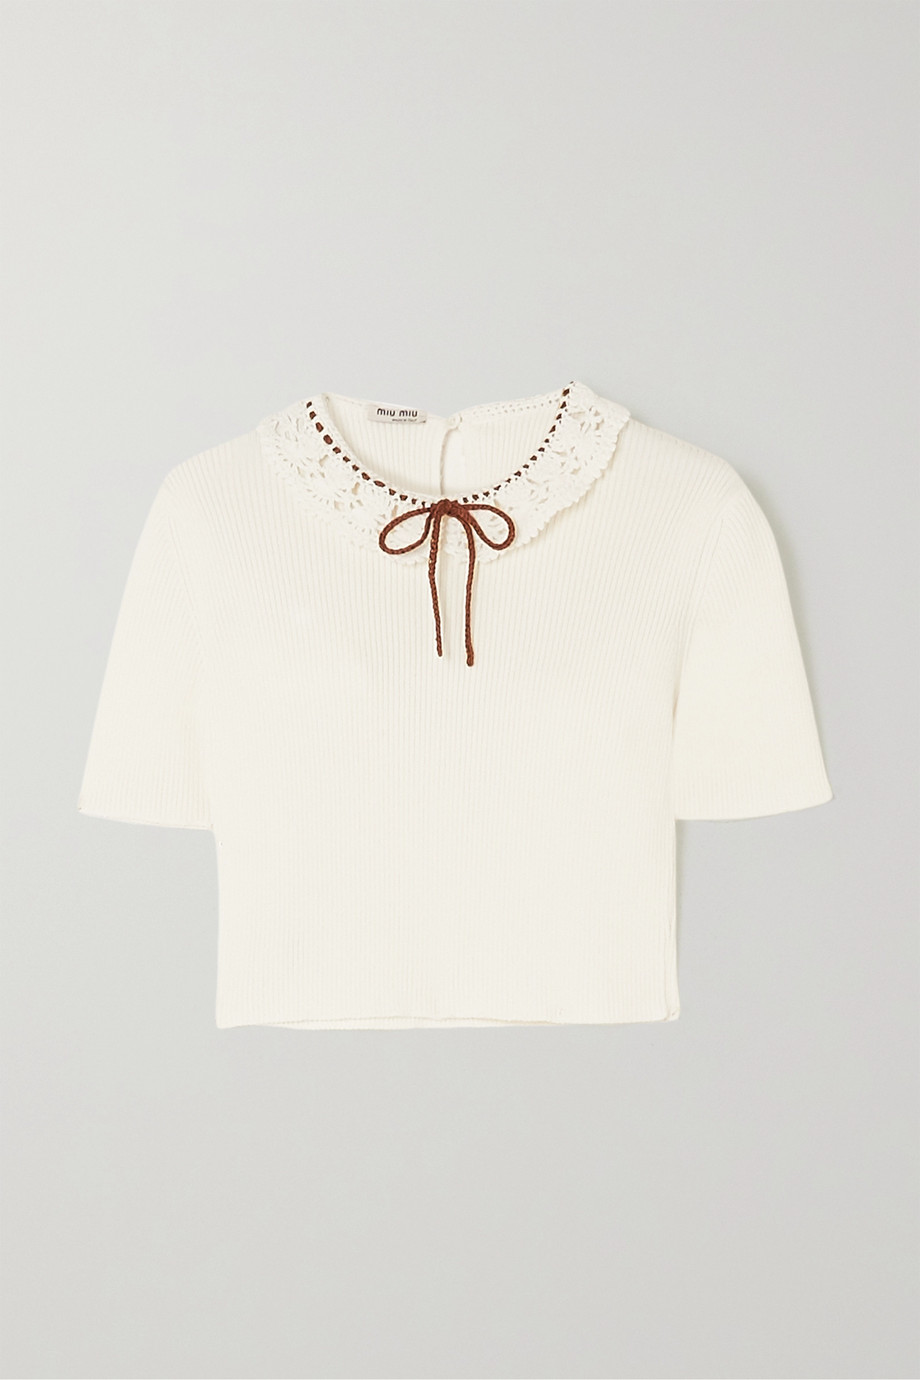 Miu Miu Cropped crochet-trimmed ribbed cotton top